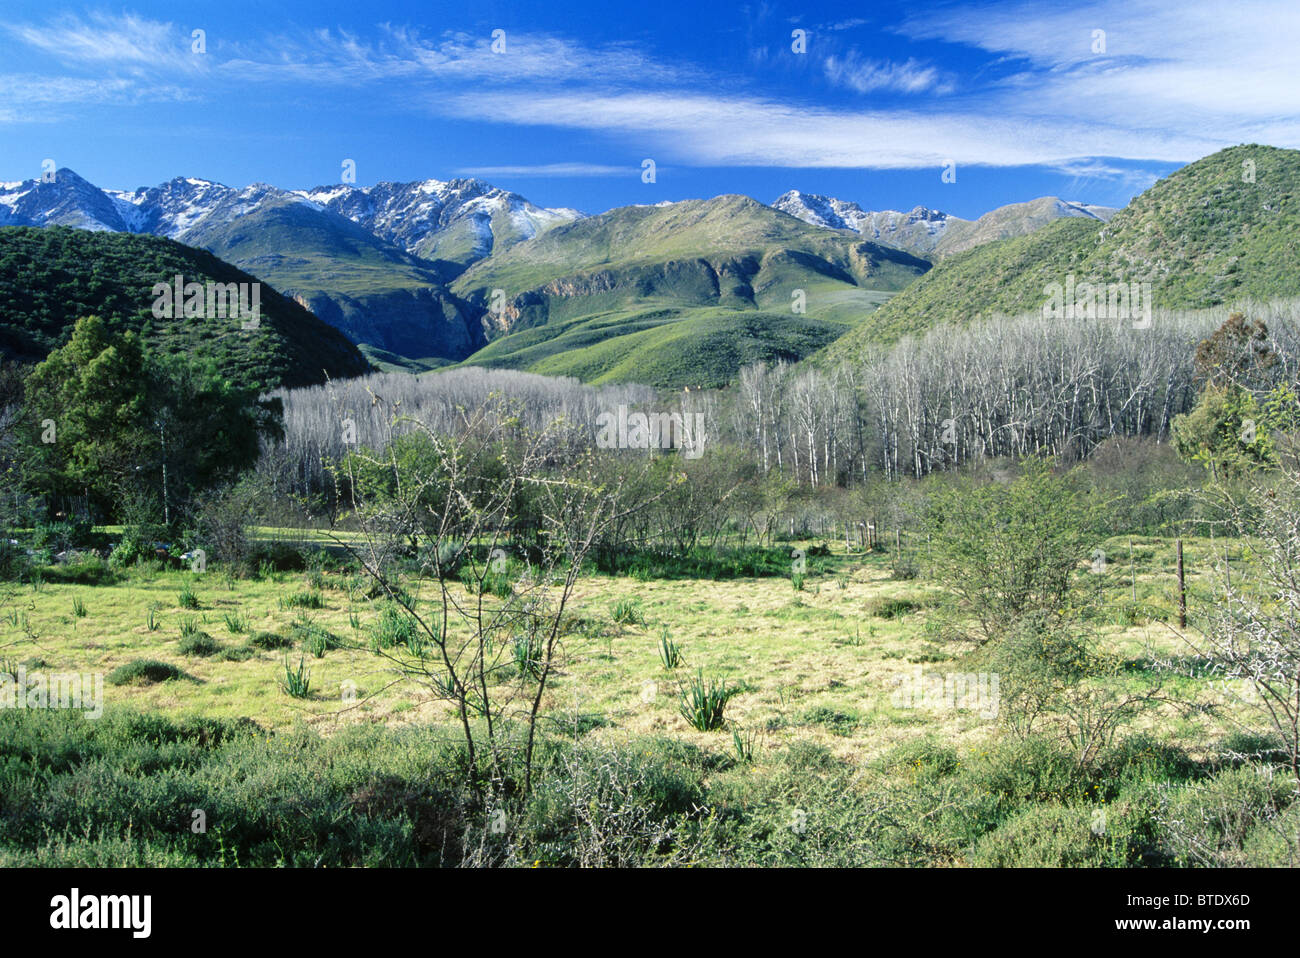 Klein Karoo pastures with leafless poplar trees and grassy foothills and snow-covered Outeniqua peaks in the distance - Stock Image